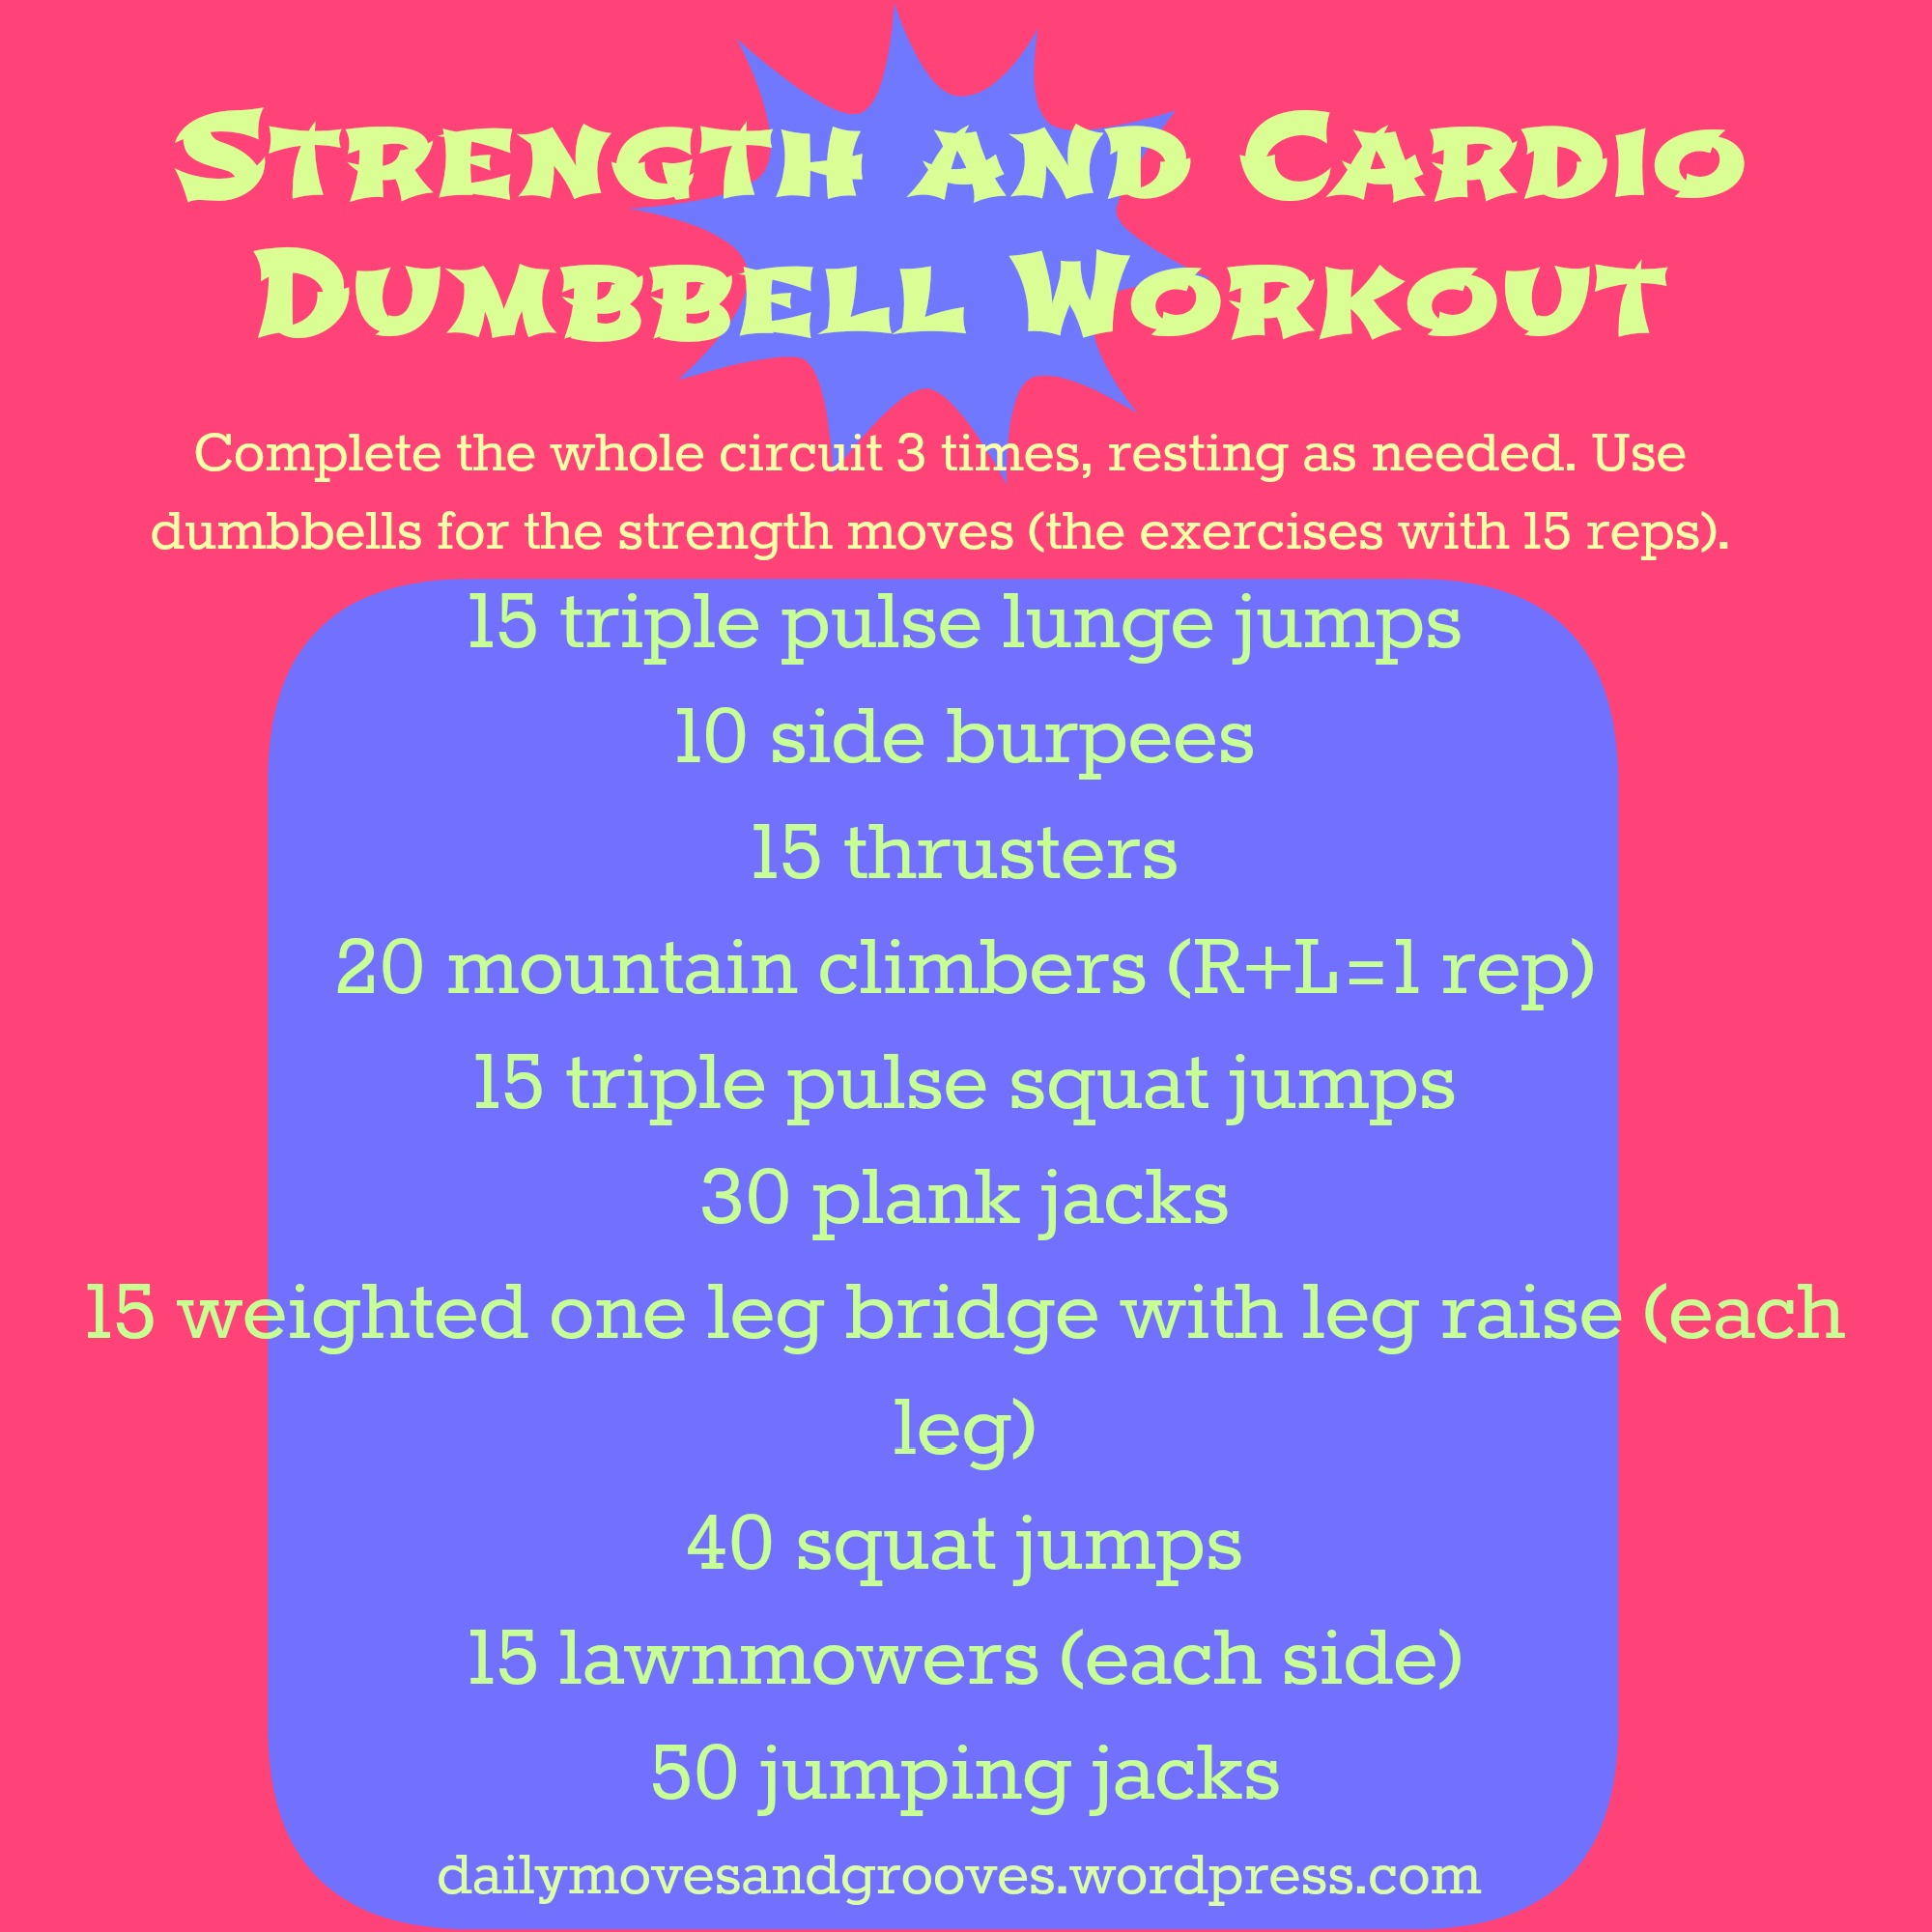 Cardio Strength Workout: Thursday Things + Strength And Cardio Circuit Workout